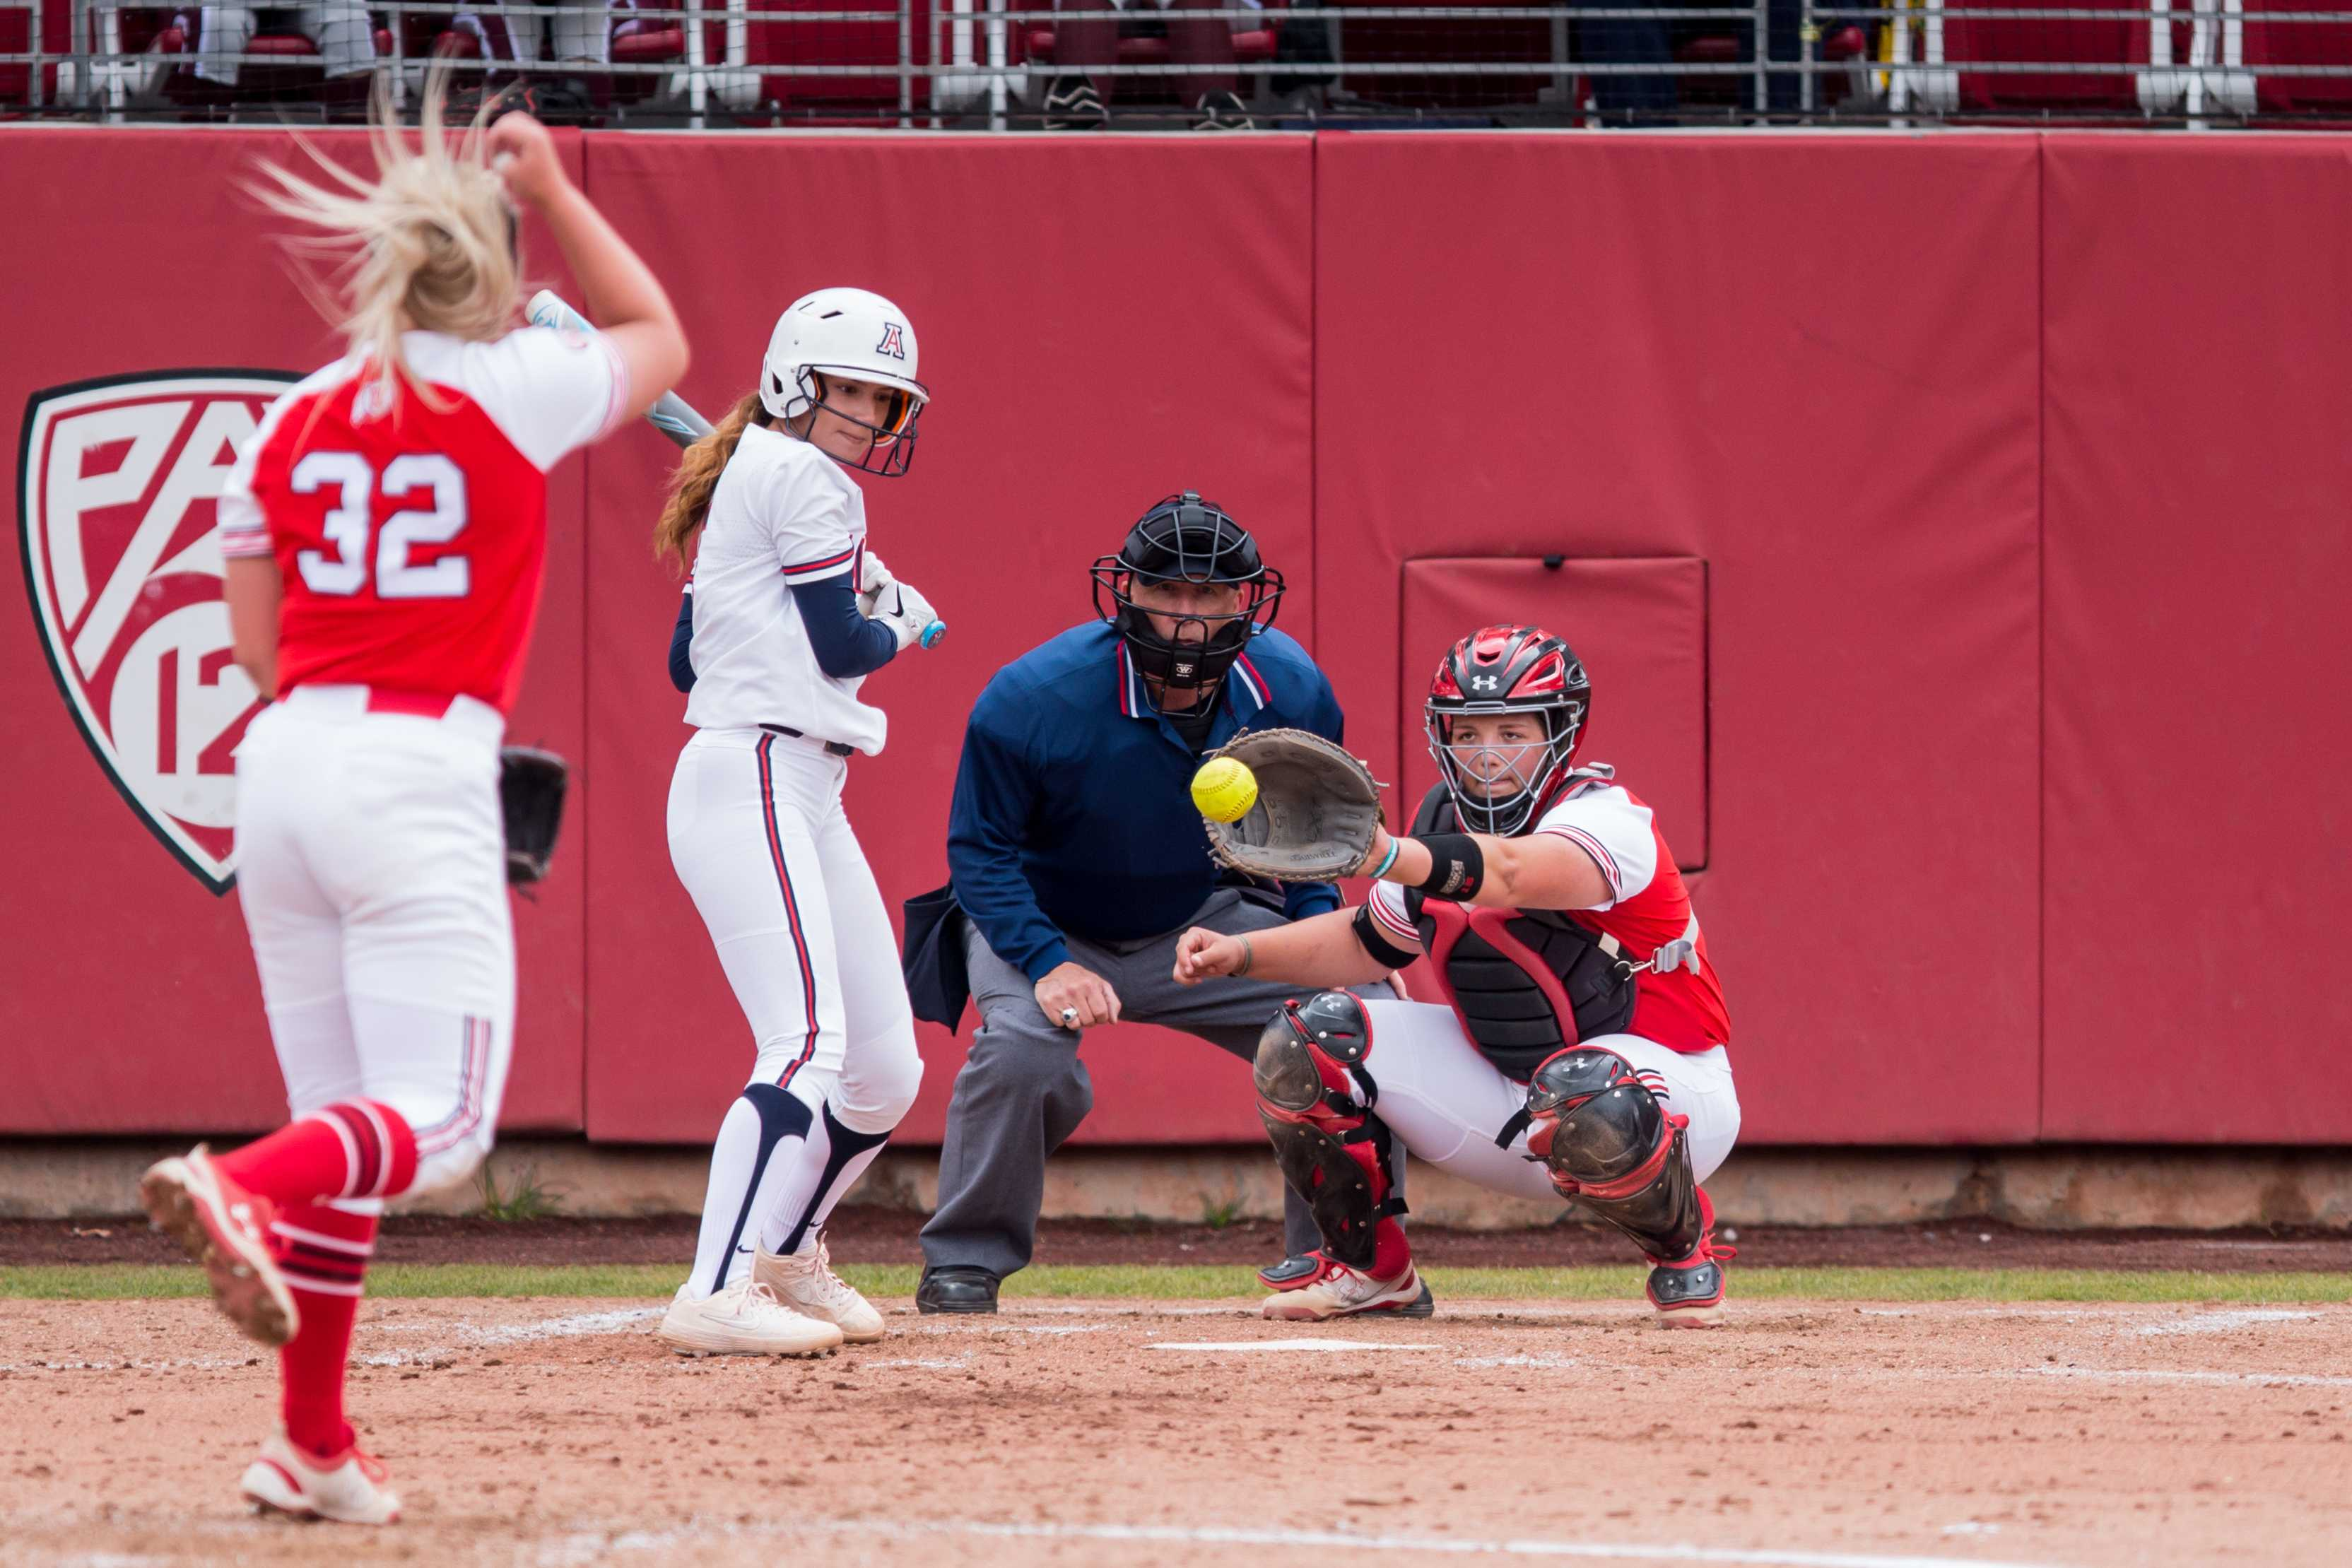 University of Utah sophomore catcher Katie Faulk (15) caught freshman utility Jess Lynch (32)'s pitch in an NCAA Softball game vs. Arizona at Dumke Family Softball Field in Salt Lake City, UT on Saturday April 06, 2019.  (Photo by Curtis Lin | Daily Utah Chronicle)